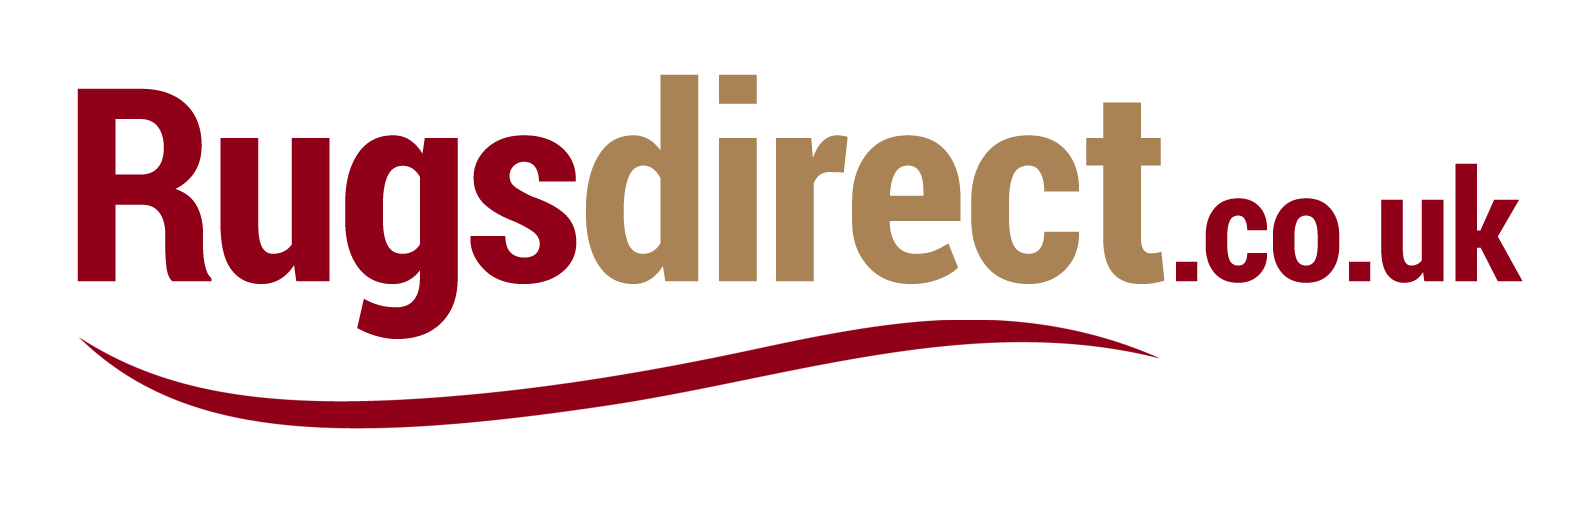 Www Rugsdirect Co Uk Offers Customers A Price Promise Free Delivery Easy Returns And Over 10 000 Rugs To Choose From